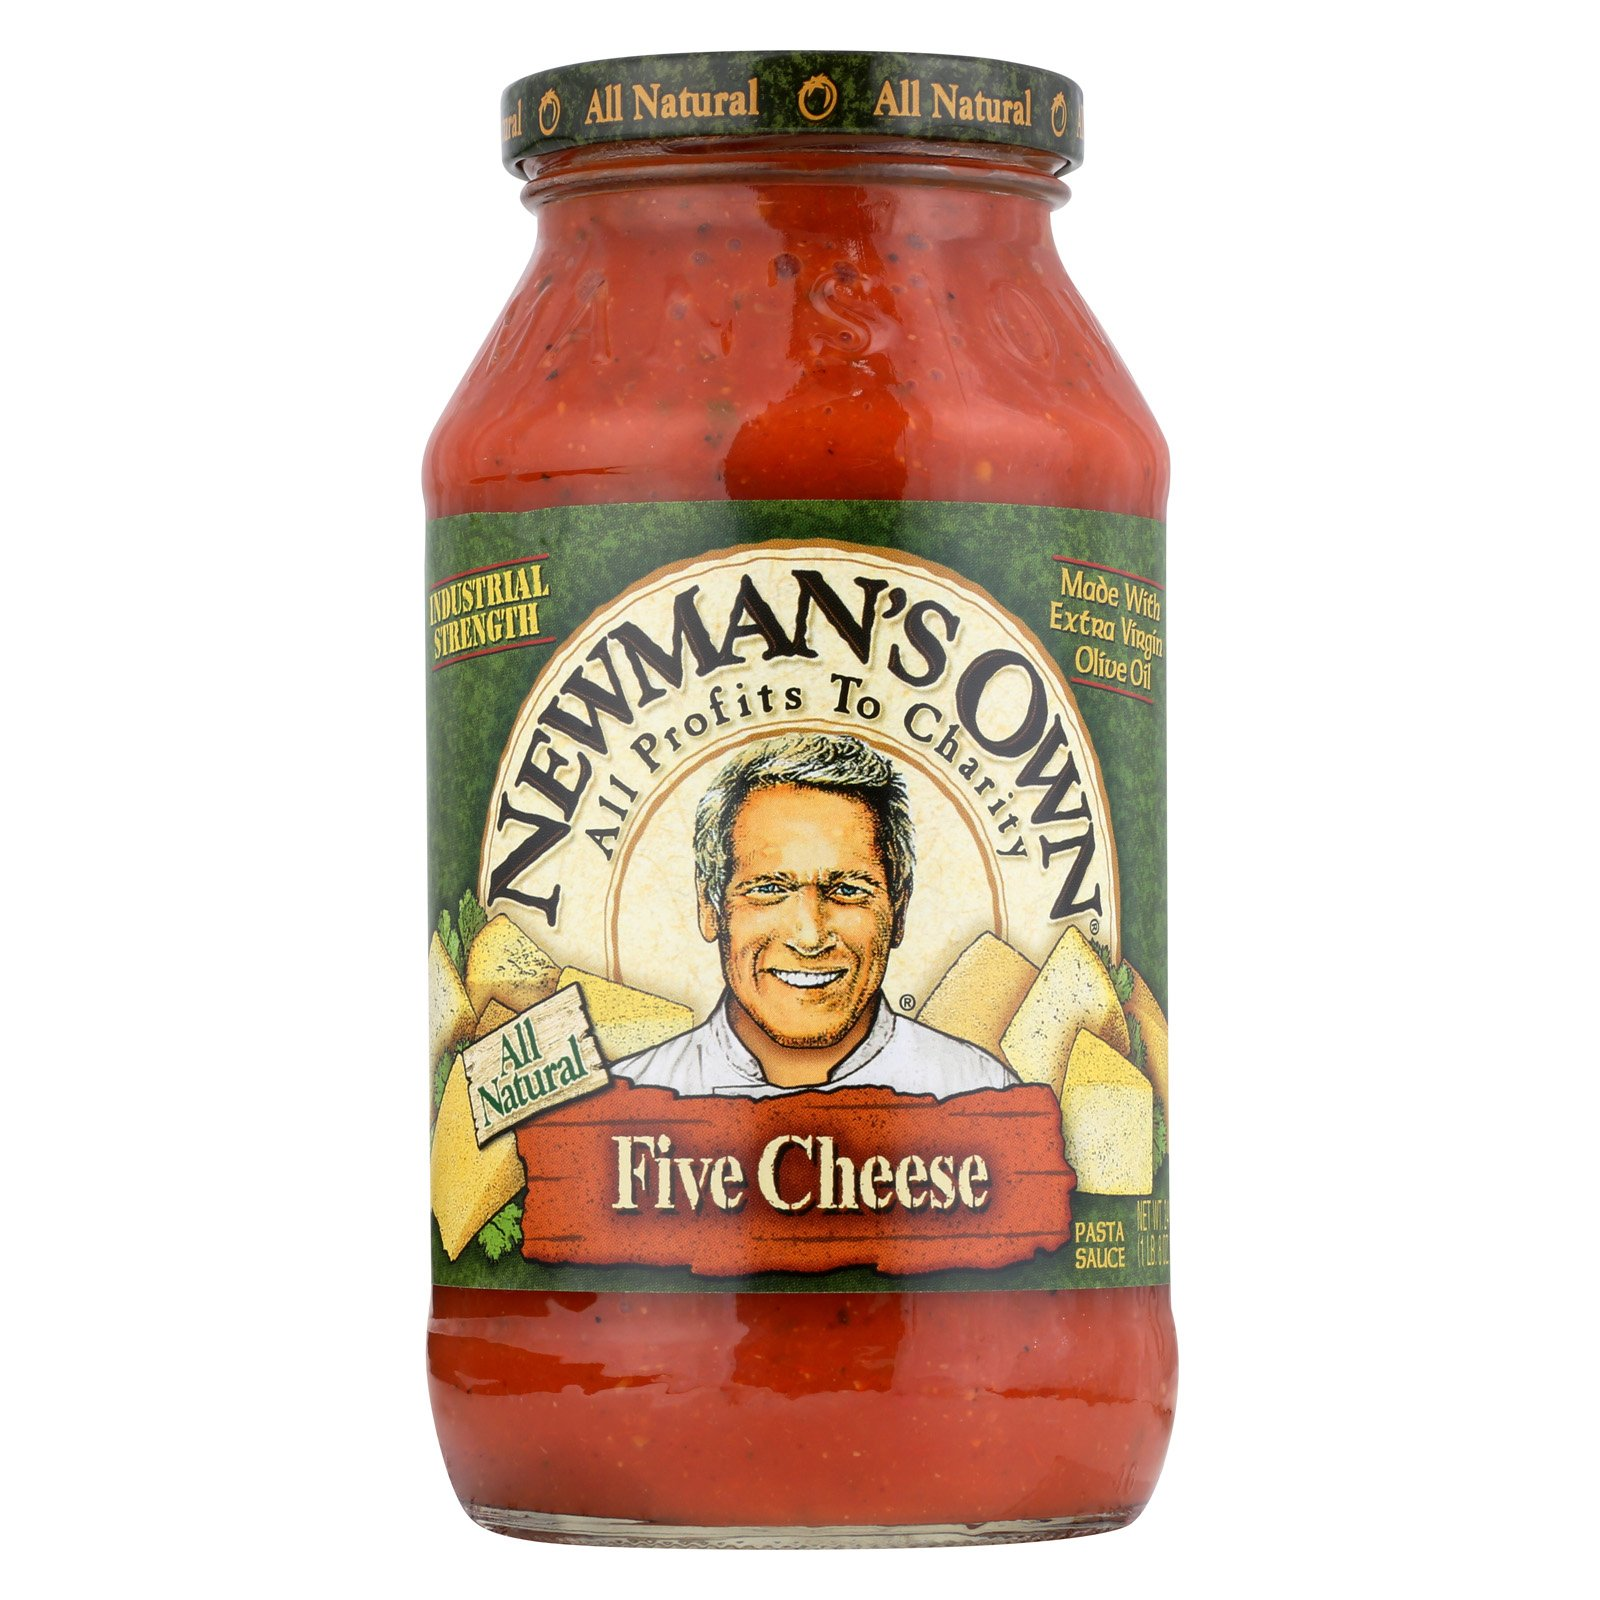 Newman's Own Pasta Sauce Five - Cheese - Case of 12 - 24 Fl oz. by Newman's Own